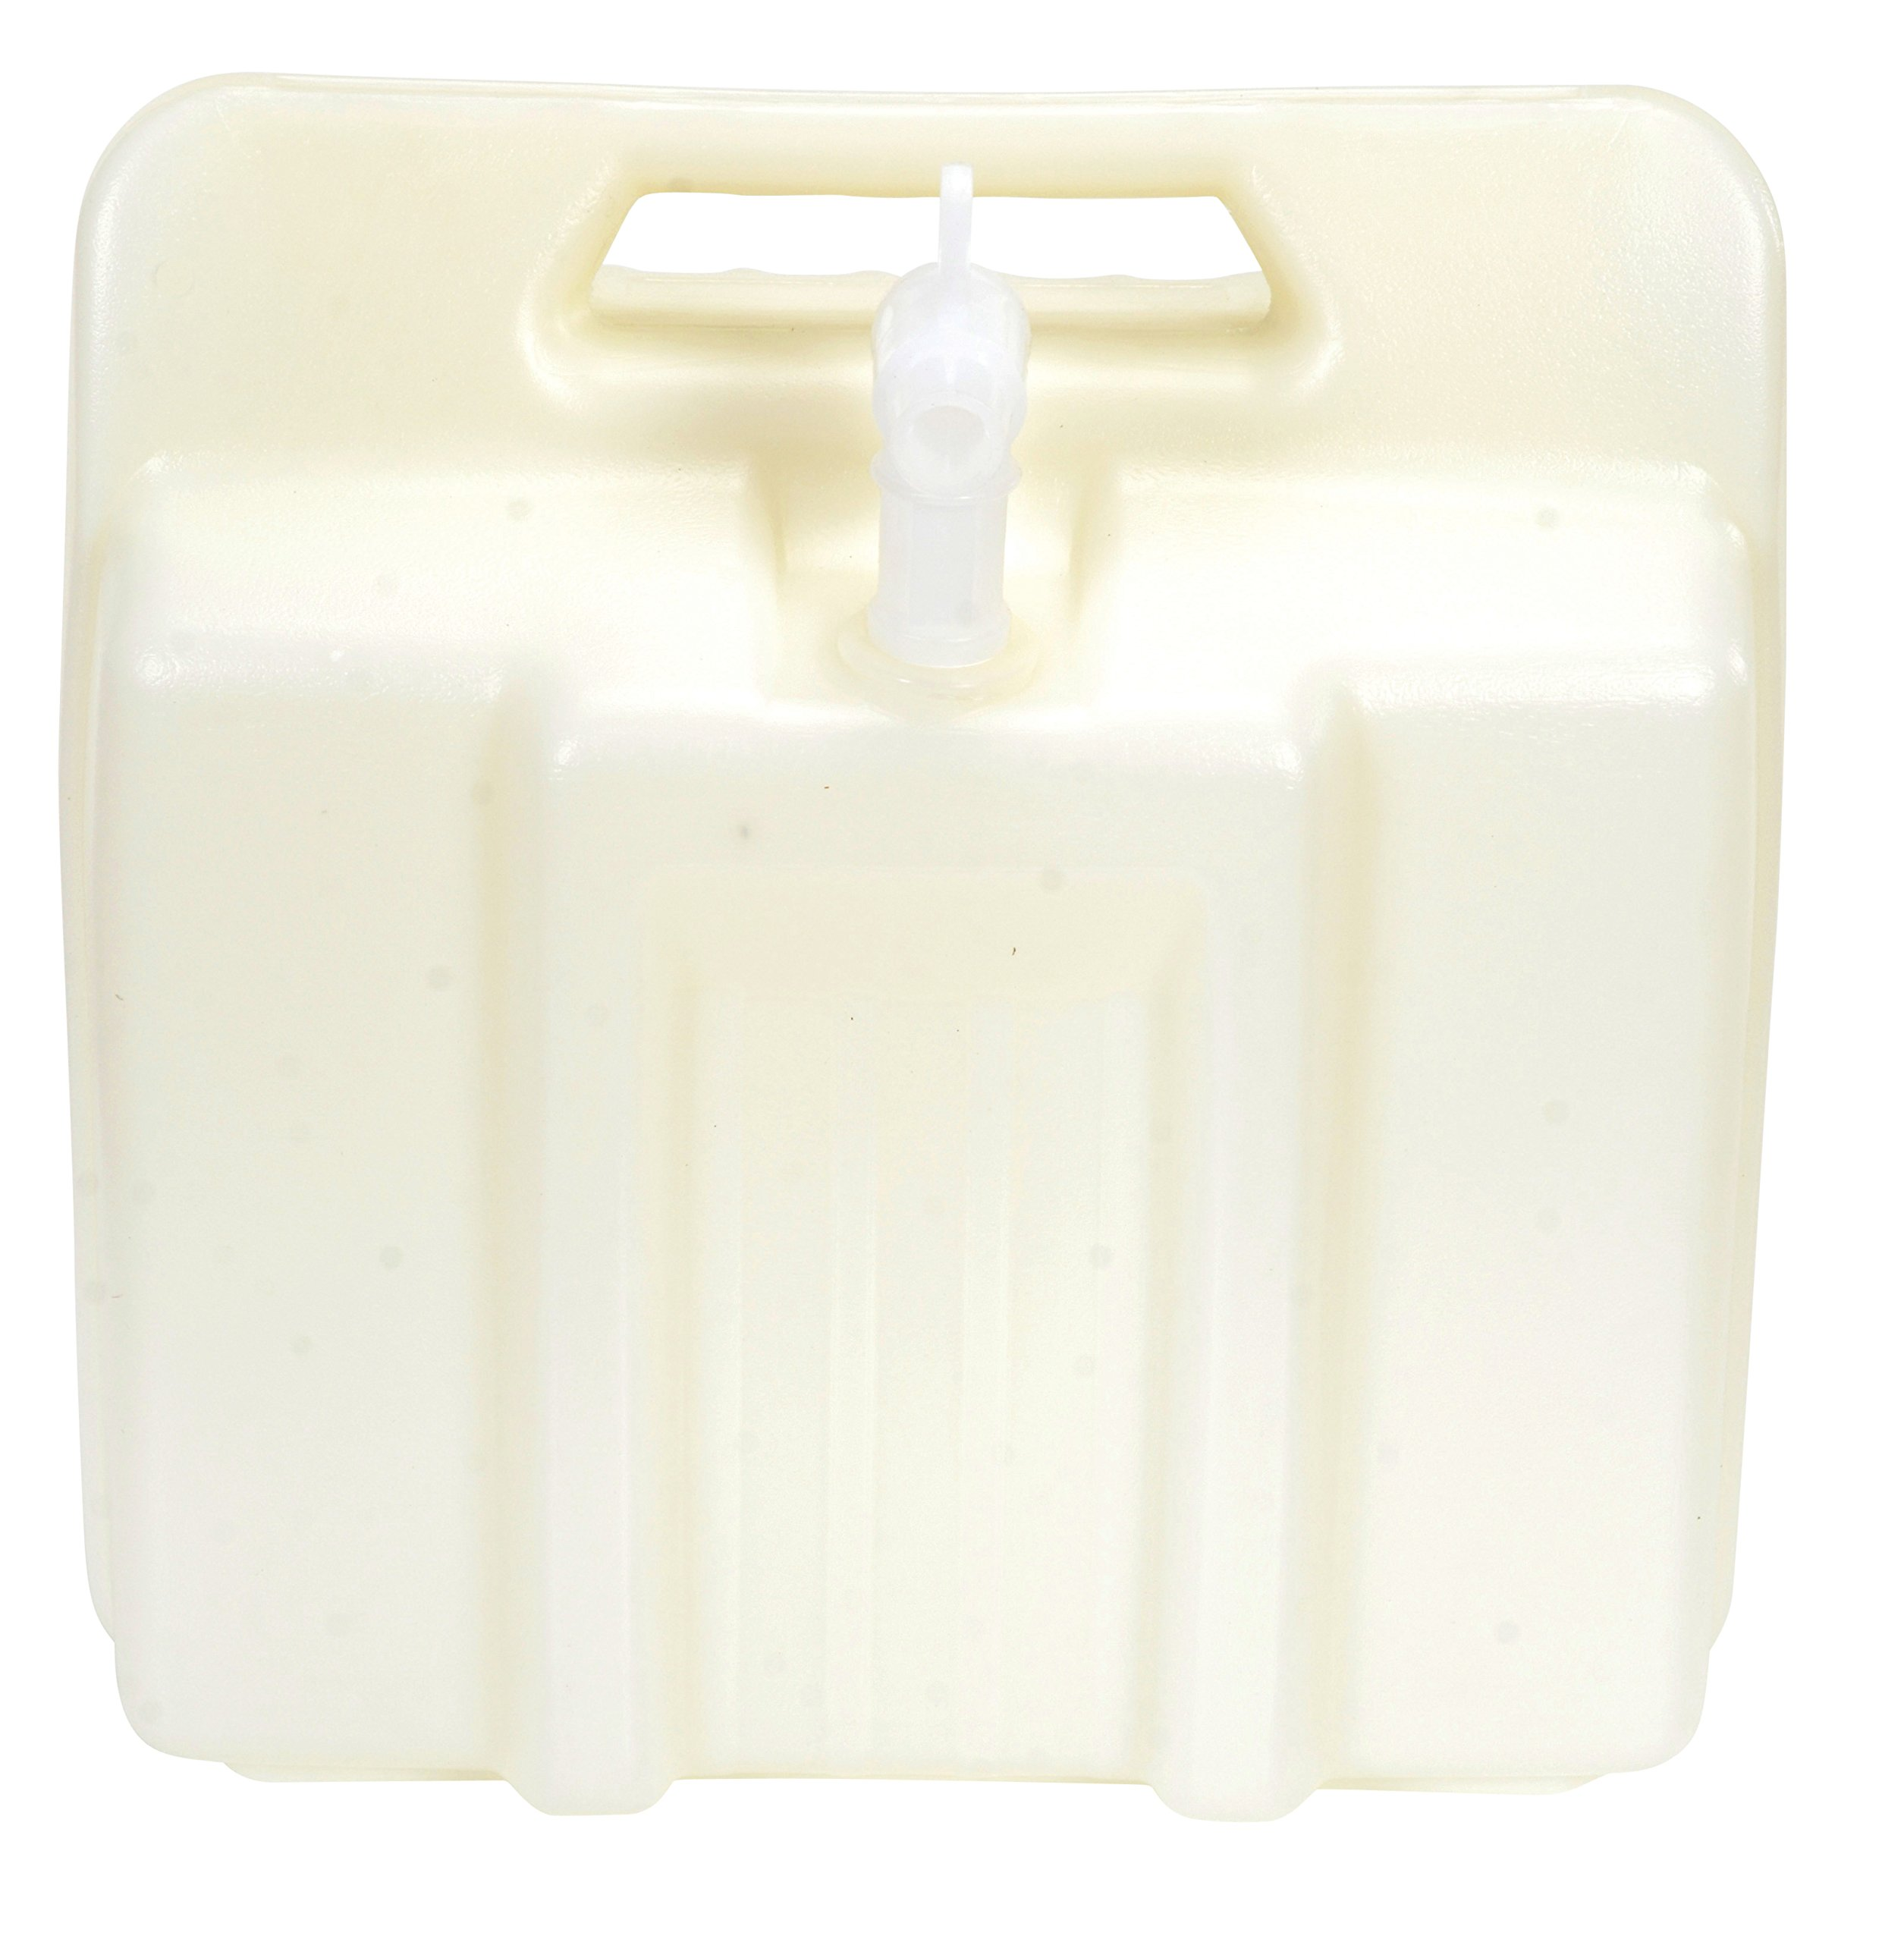 Vestil CARB-4-LP High Density Polyethylene (HDPE) Rectangular Low Profile Carboy with Handle and 3/4'' Polyethylene Spigot, 4 Gallon Capacity, Natural